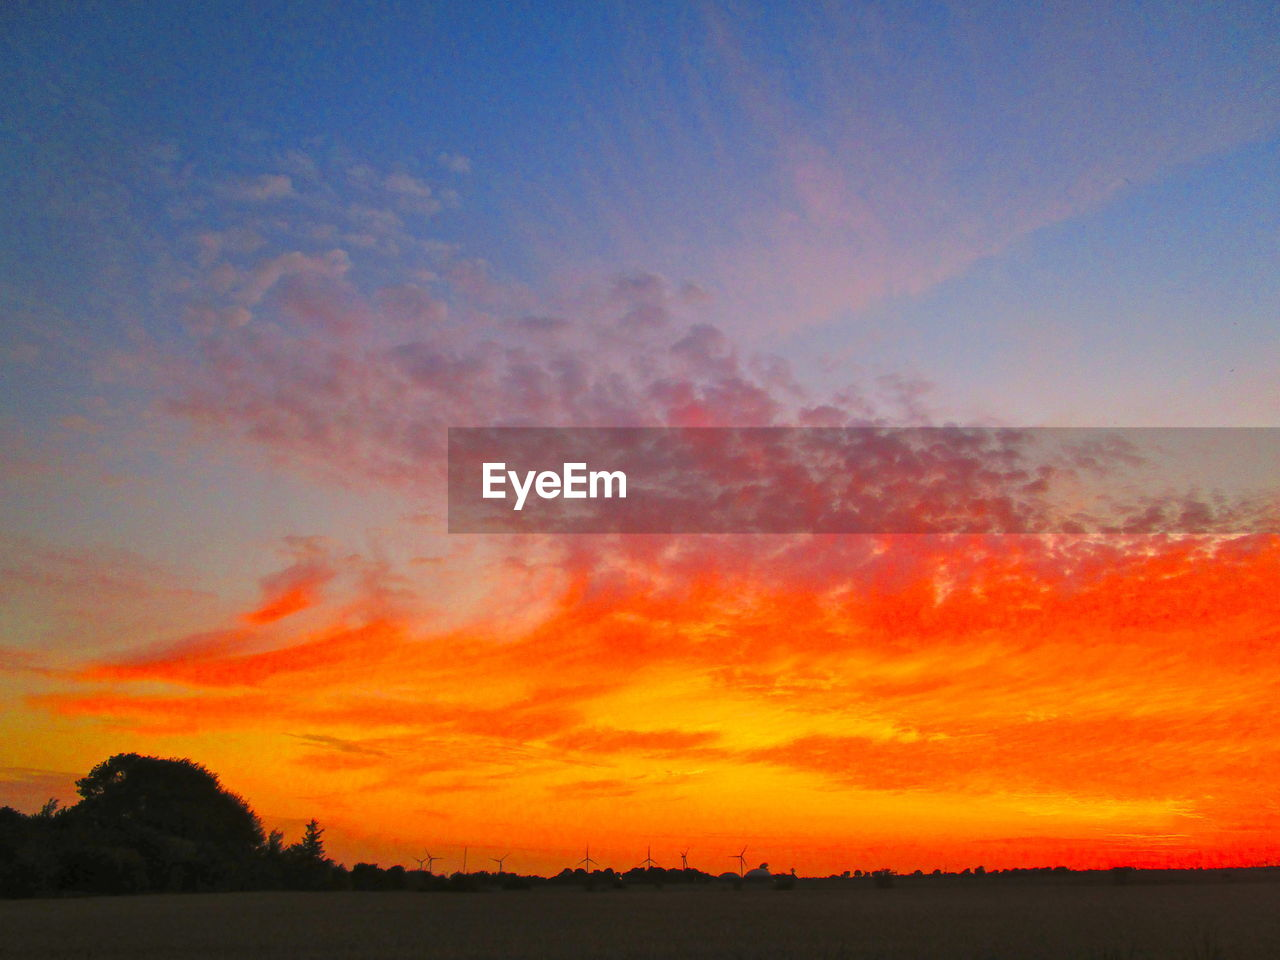 sky, sunset, scenics - nature, beauty in nature, cloud - sky, tranquil scene, tranquility, orange color, silhouette, landscape, environment, no people, idyllic, nature, non-urban scene, tree, plant, field, land, outdoors, romantic sky